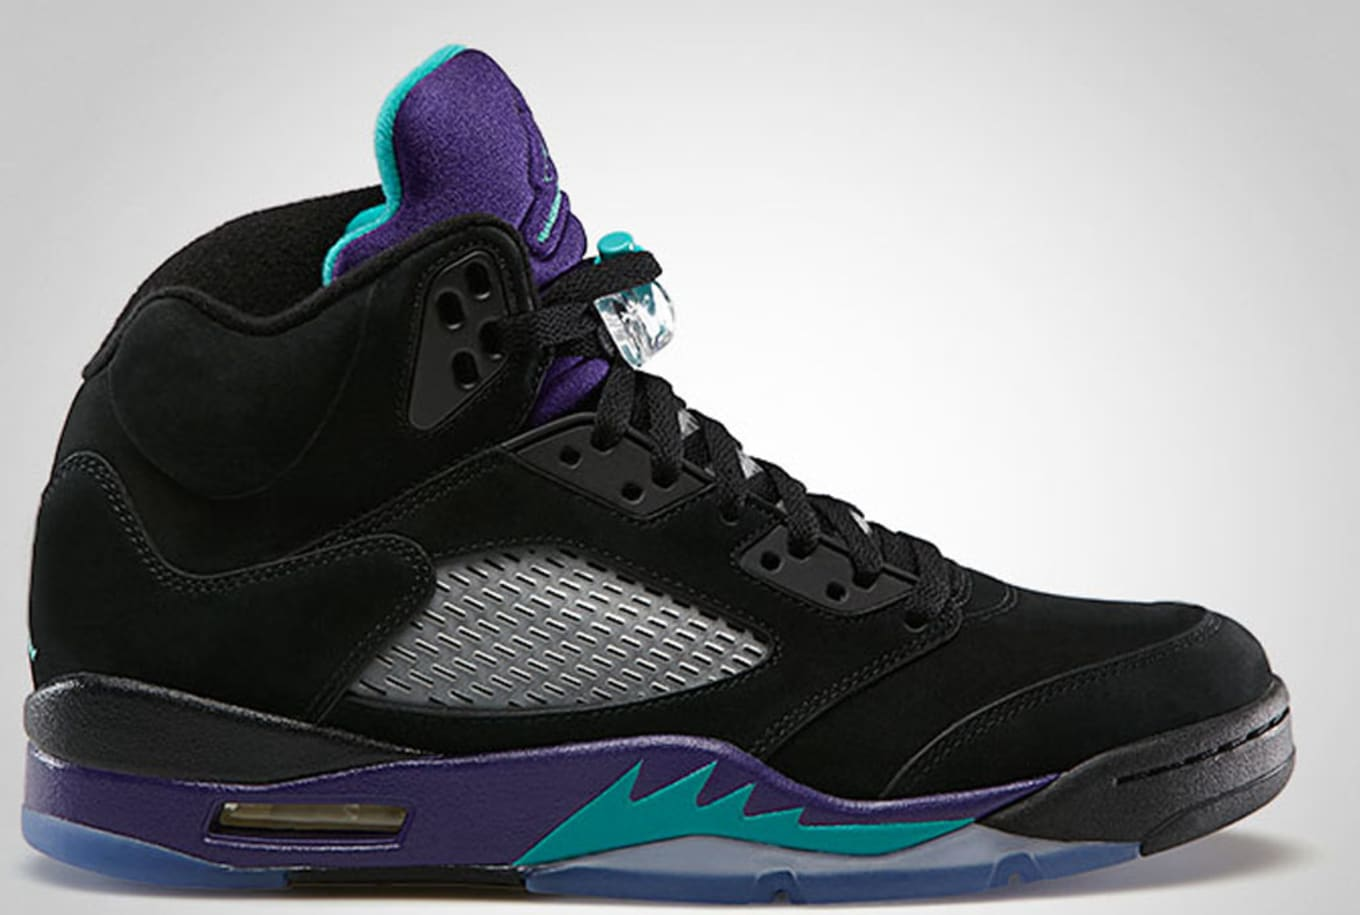 5a2f9dce32c462 Air Jordan 5  The Definitive Guide to Colorways